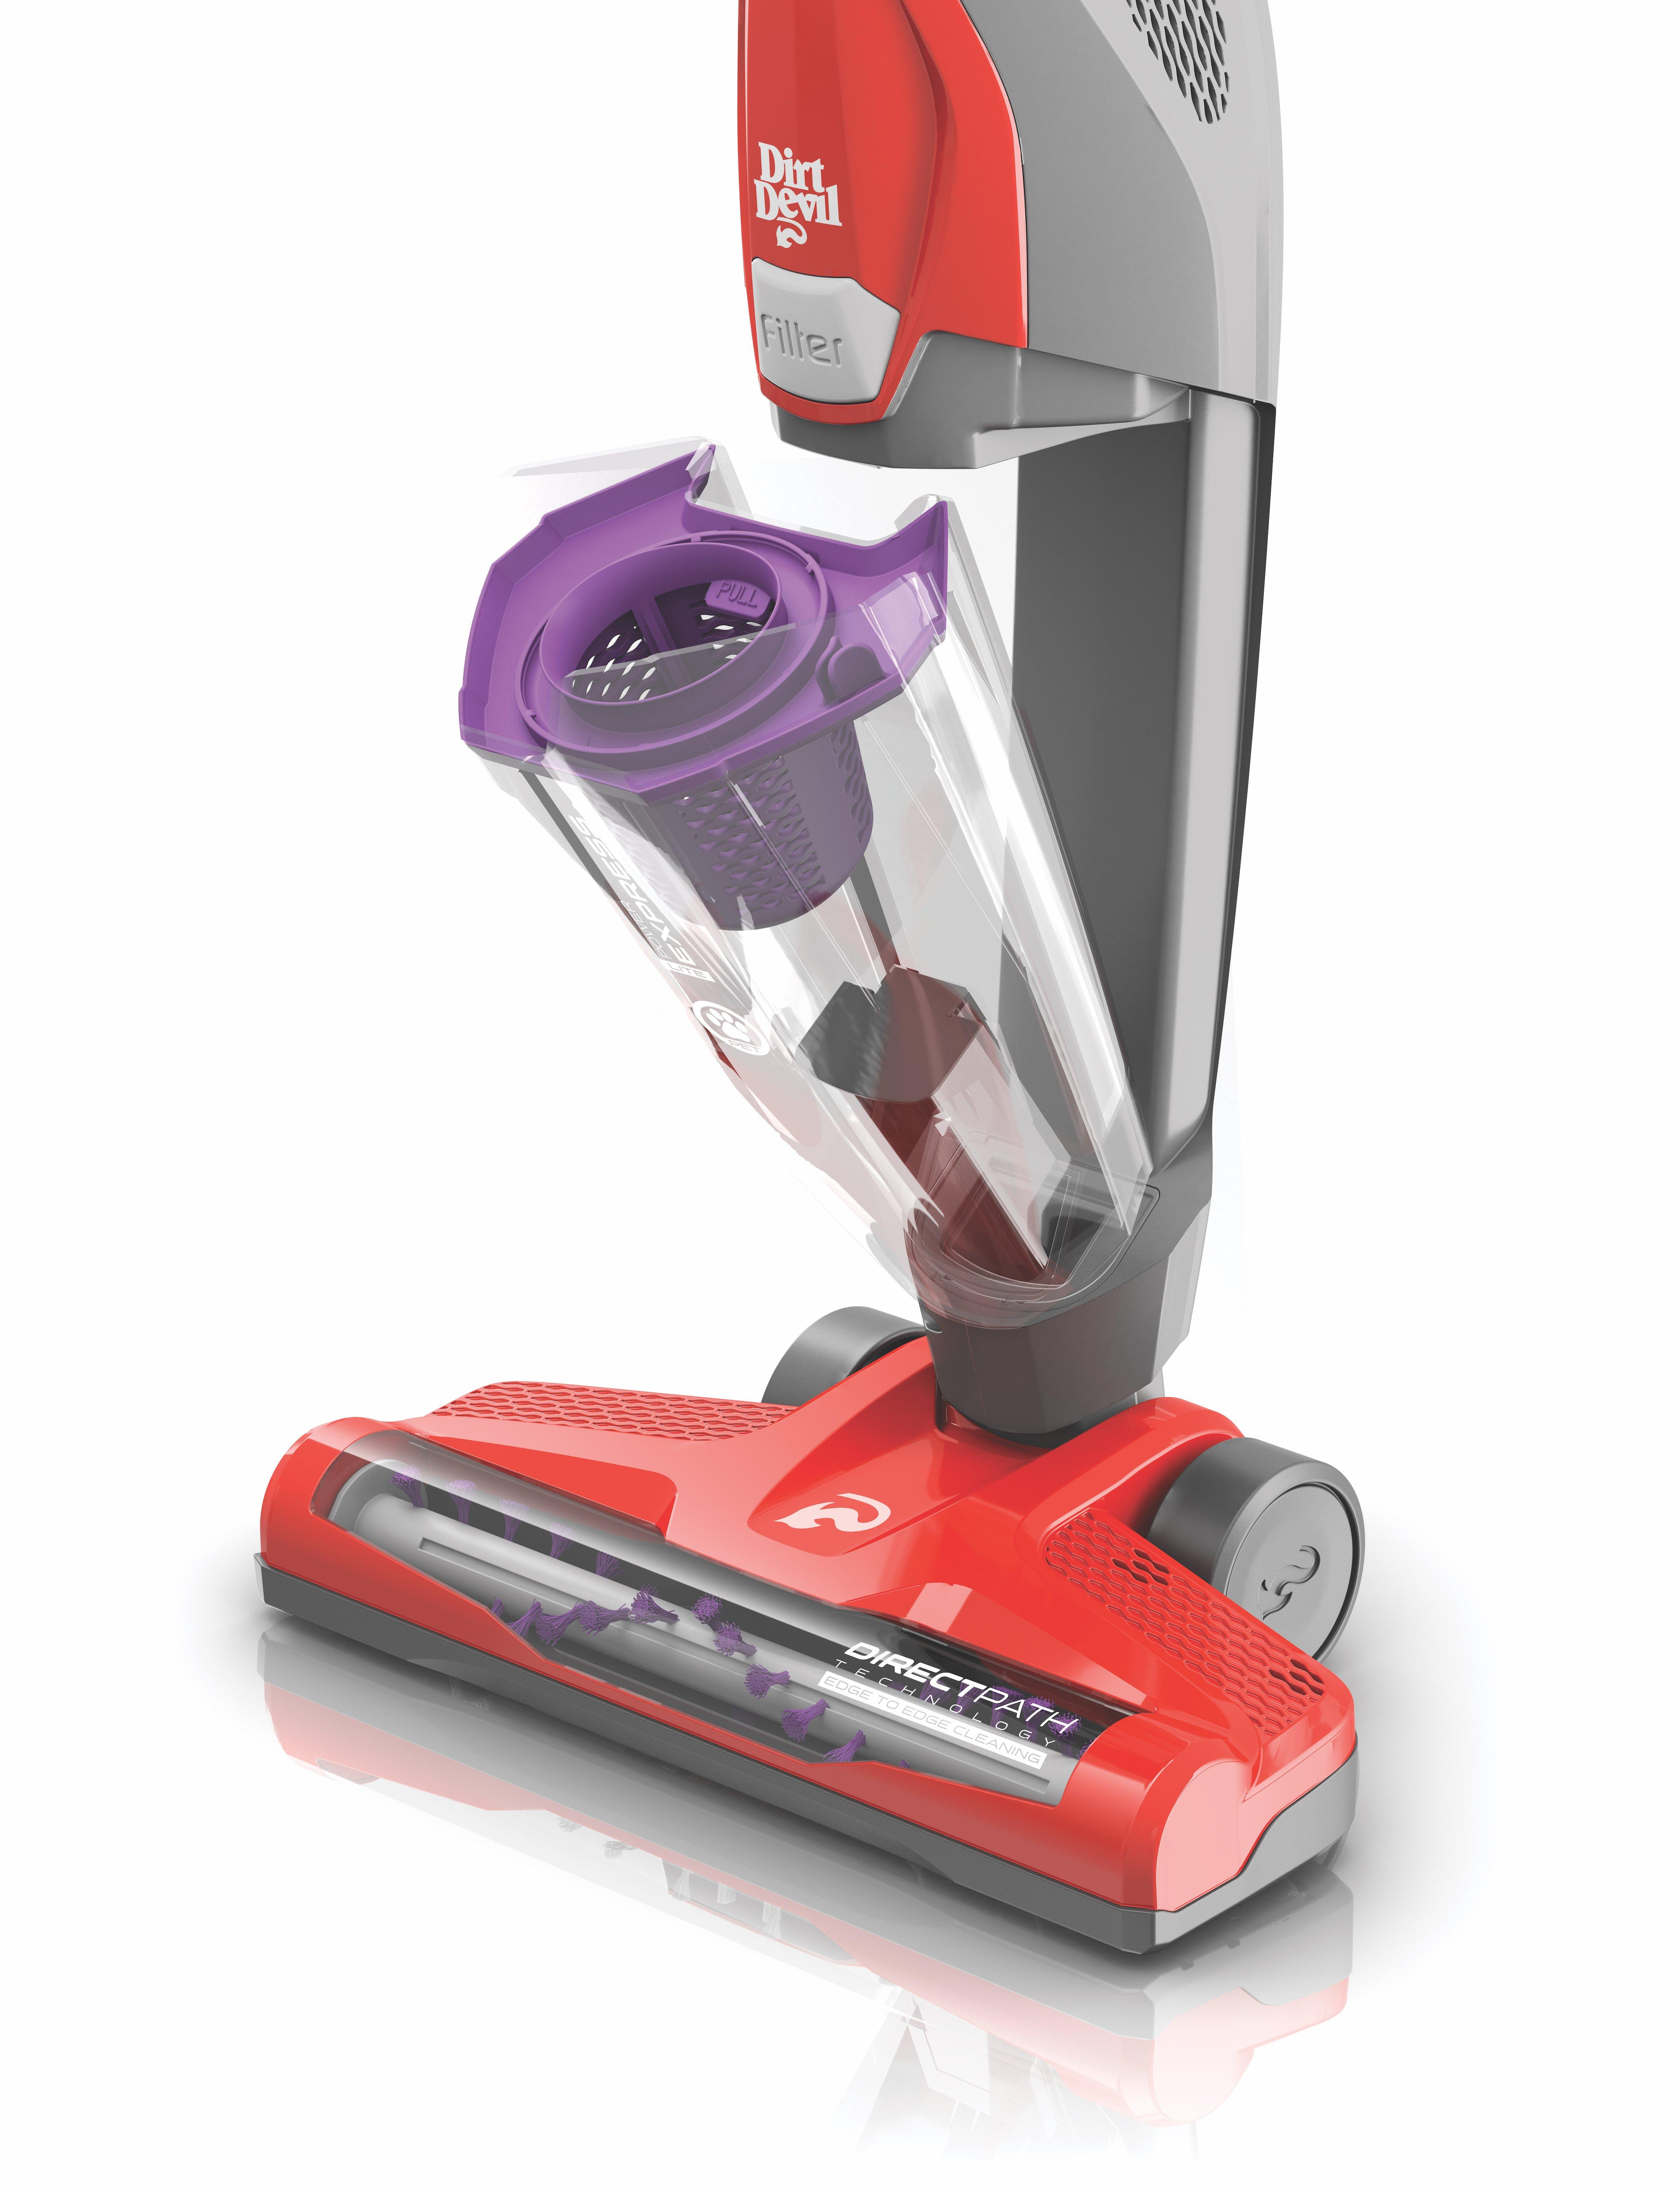 Power Express Lite Pet 3-in-1 Corded Stick Vacuum6